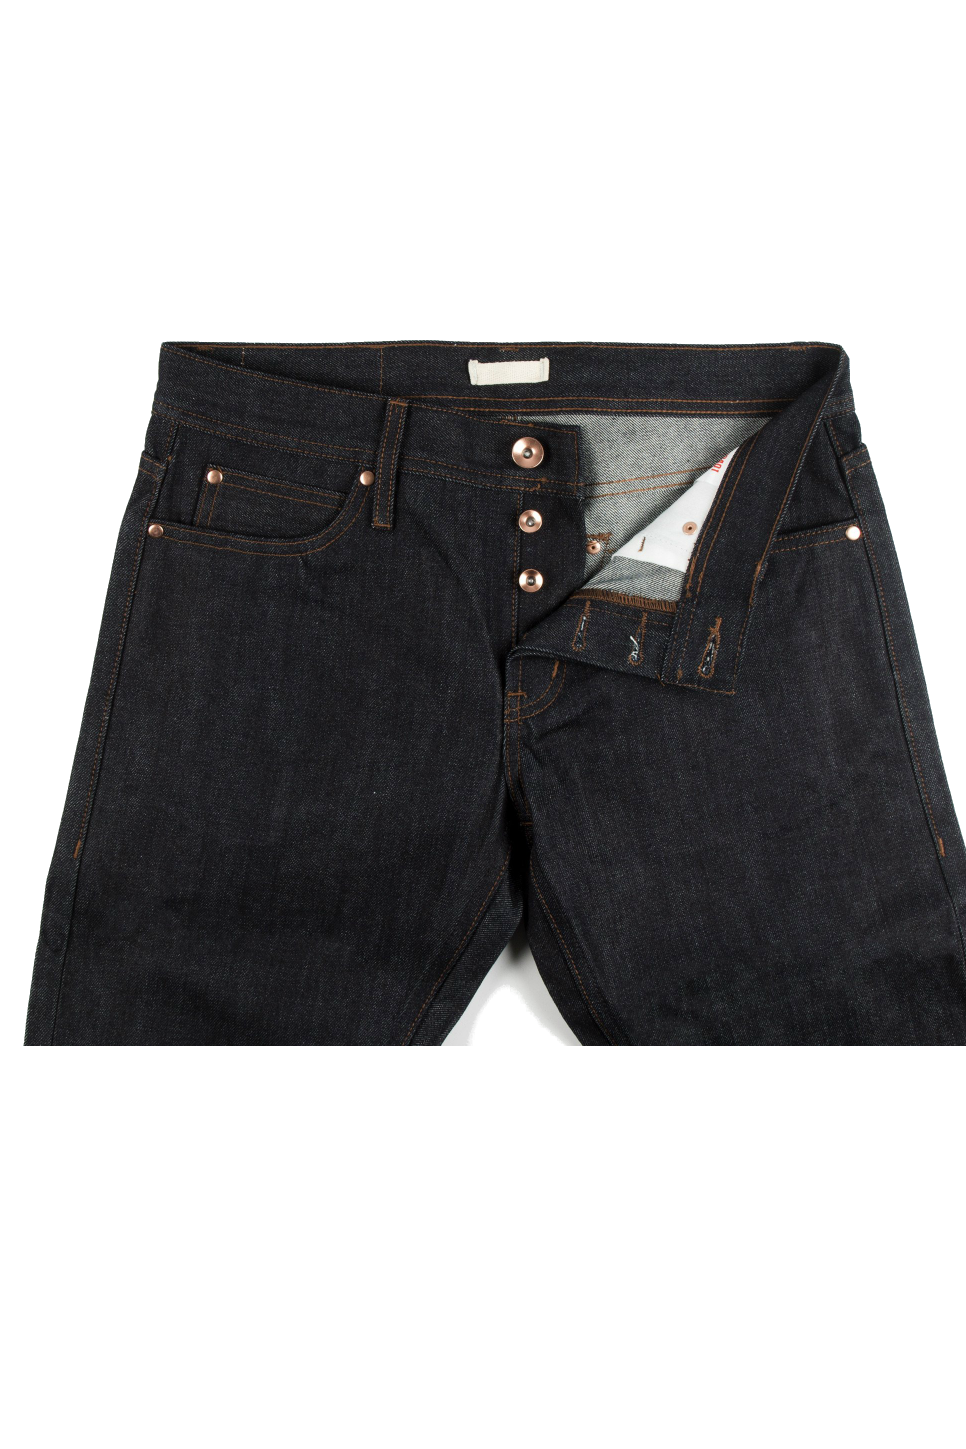 Unbranded - UB401 Tight Fit - Front Detail